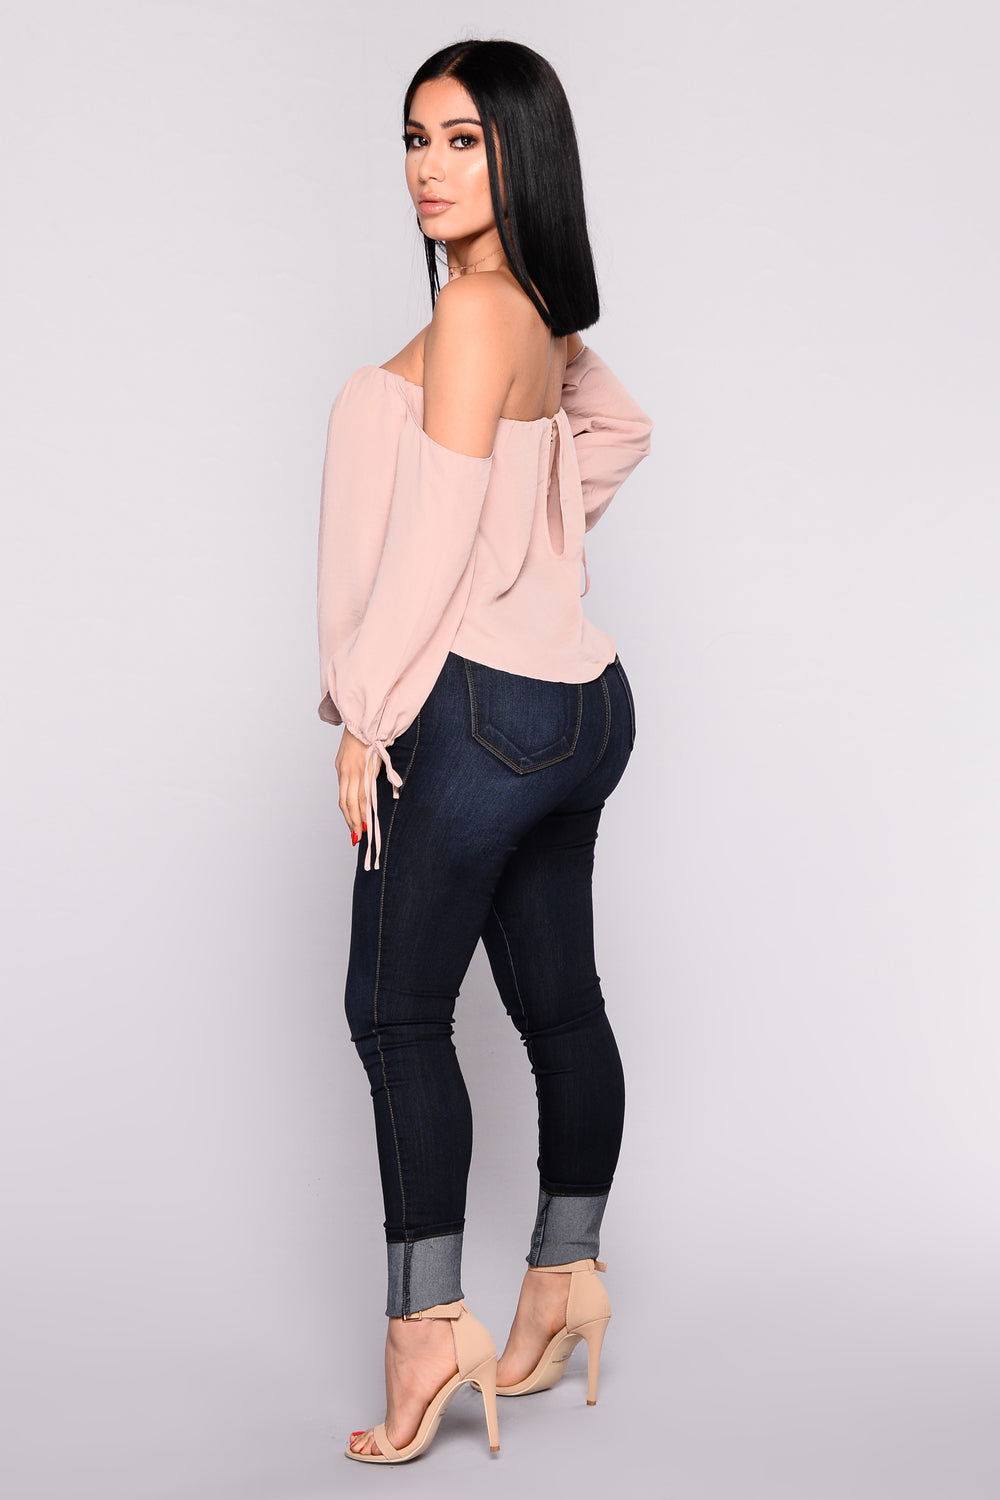 Koko Off The Shoulder Top - Champagne